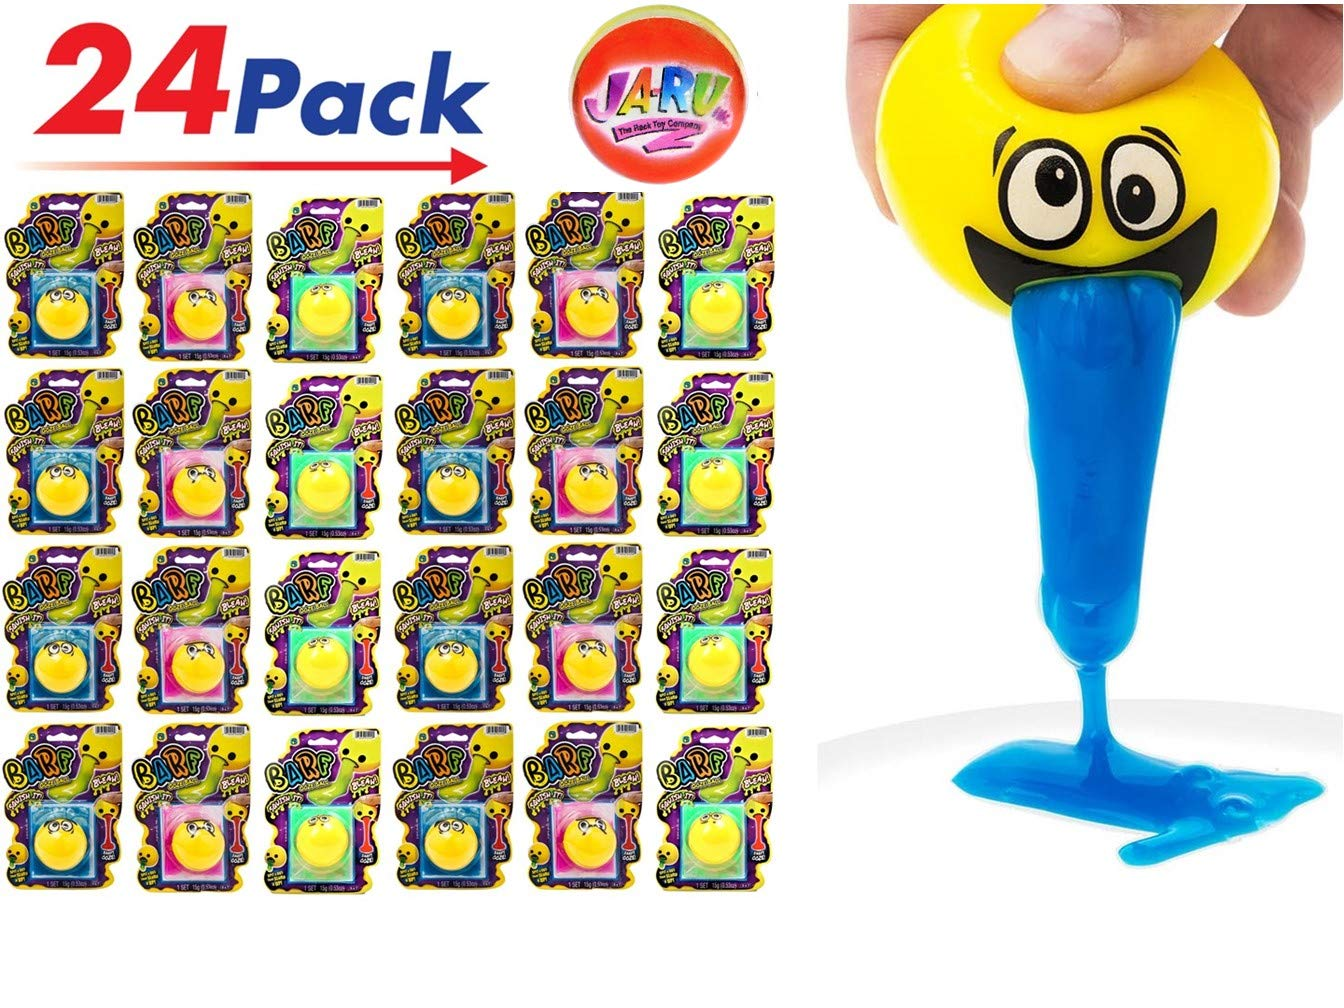 JA-RU Emoji Barf Ooze Stress Relief Squeeze Ball (Pack of 24 Units) Squishy Stress Slime Putty Ball Kit Plus 1 Collectable Bouncy Ball | Item #5299-24p